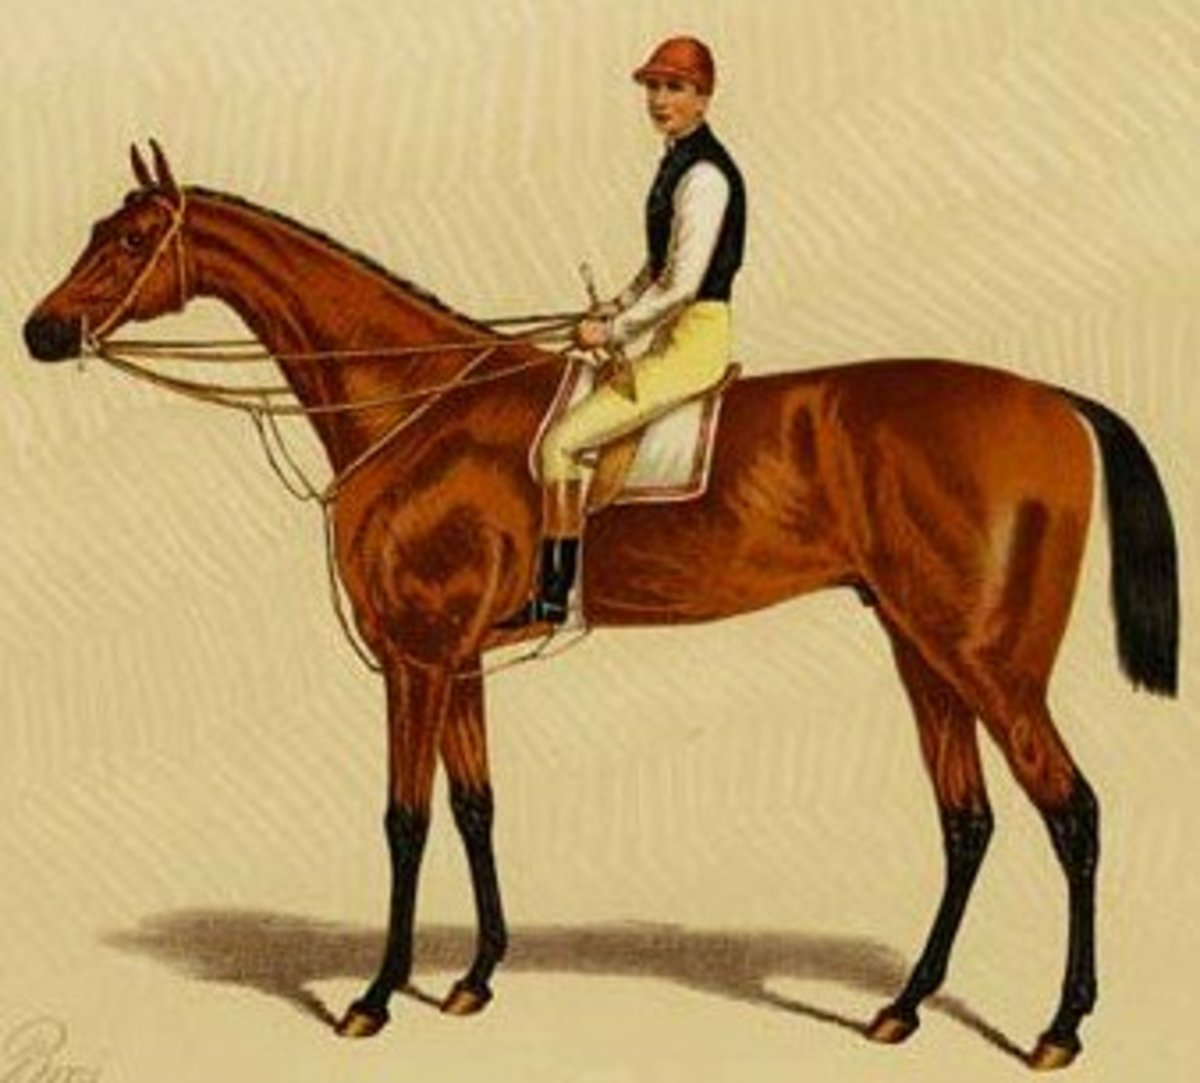 The Tragic Life of Jockey Fred Archer